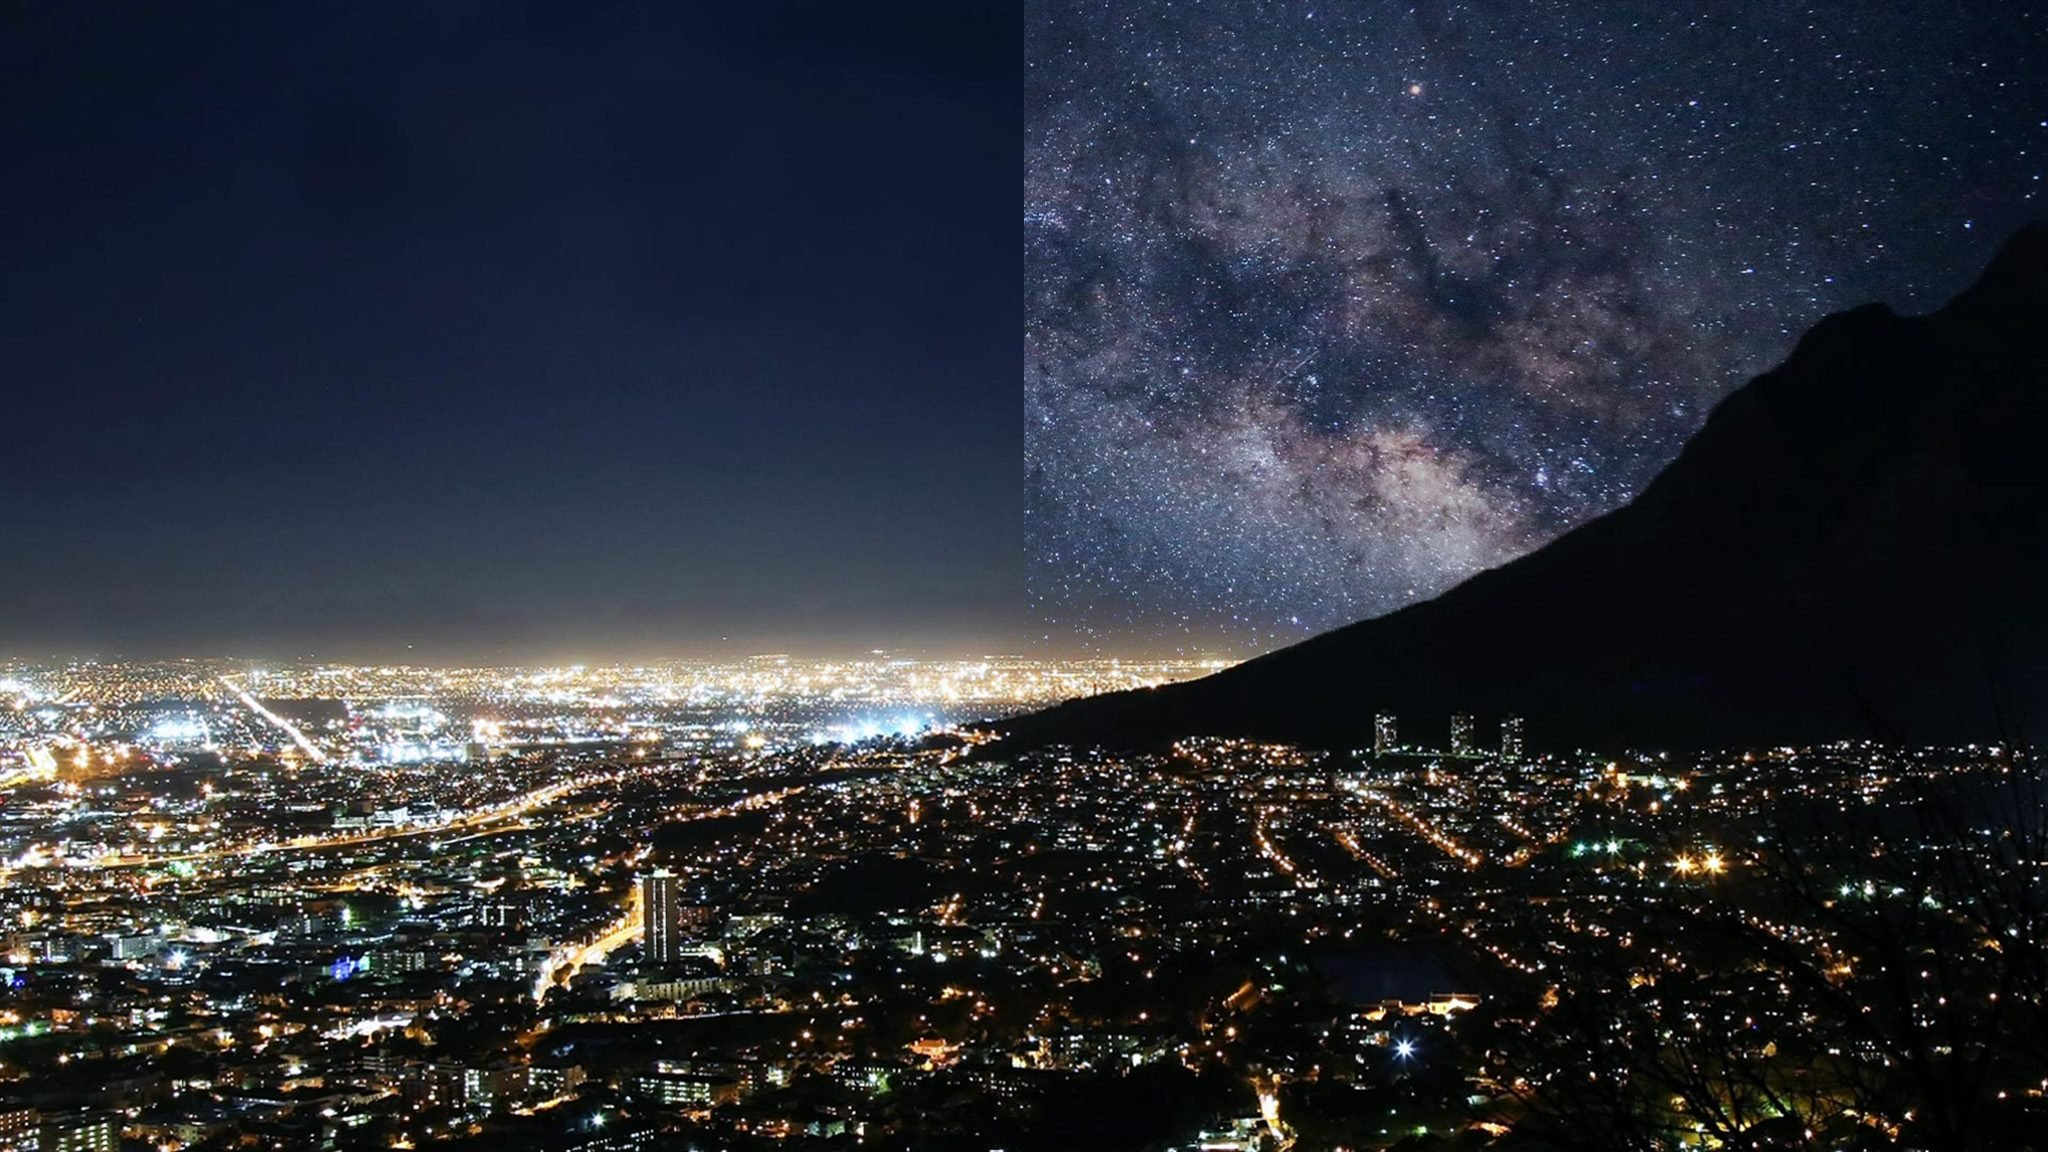 capetown South Africa light pollution